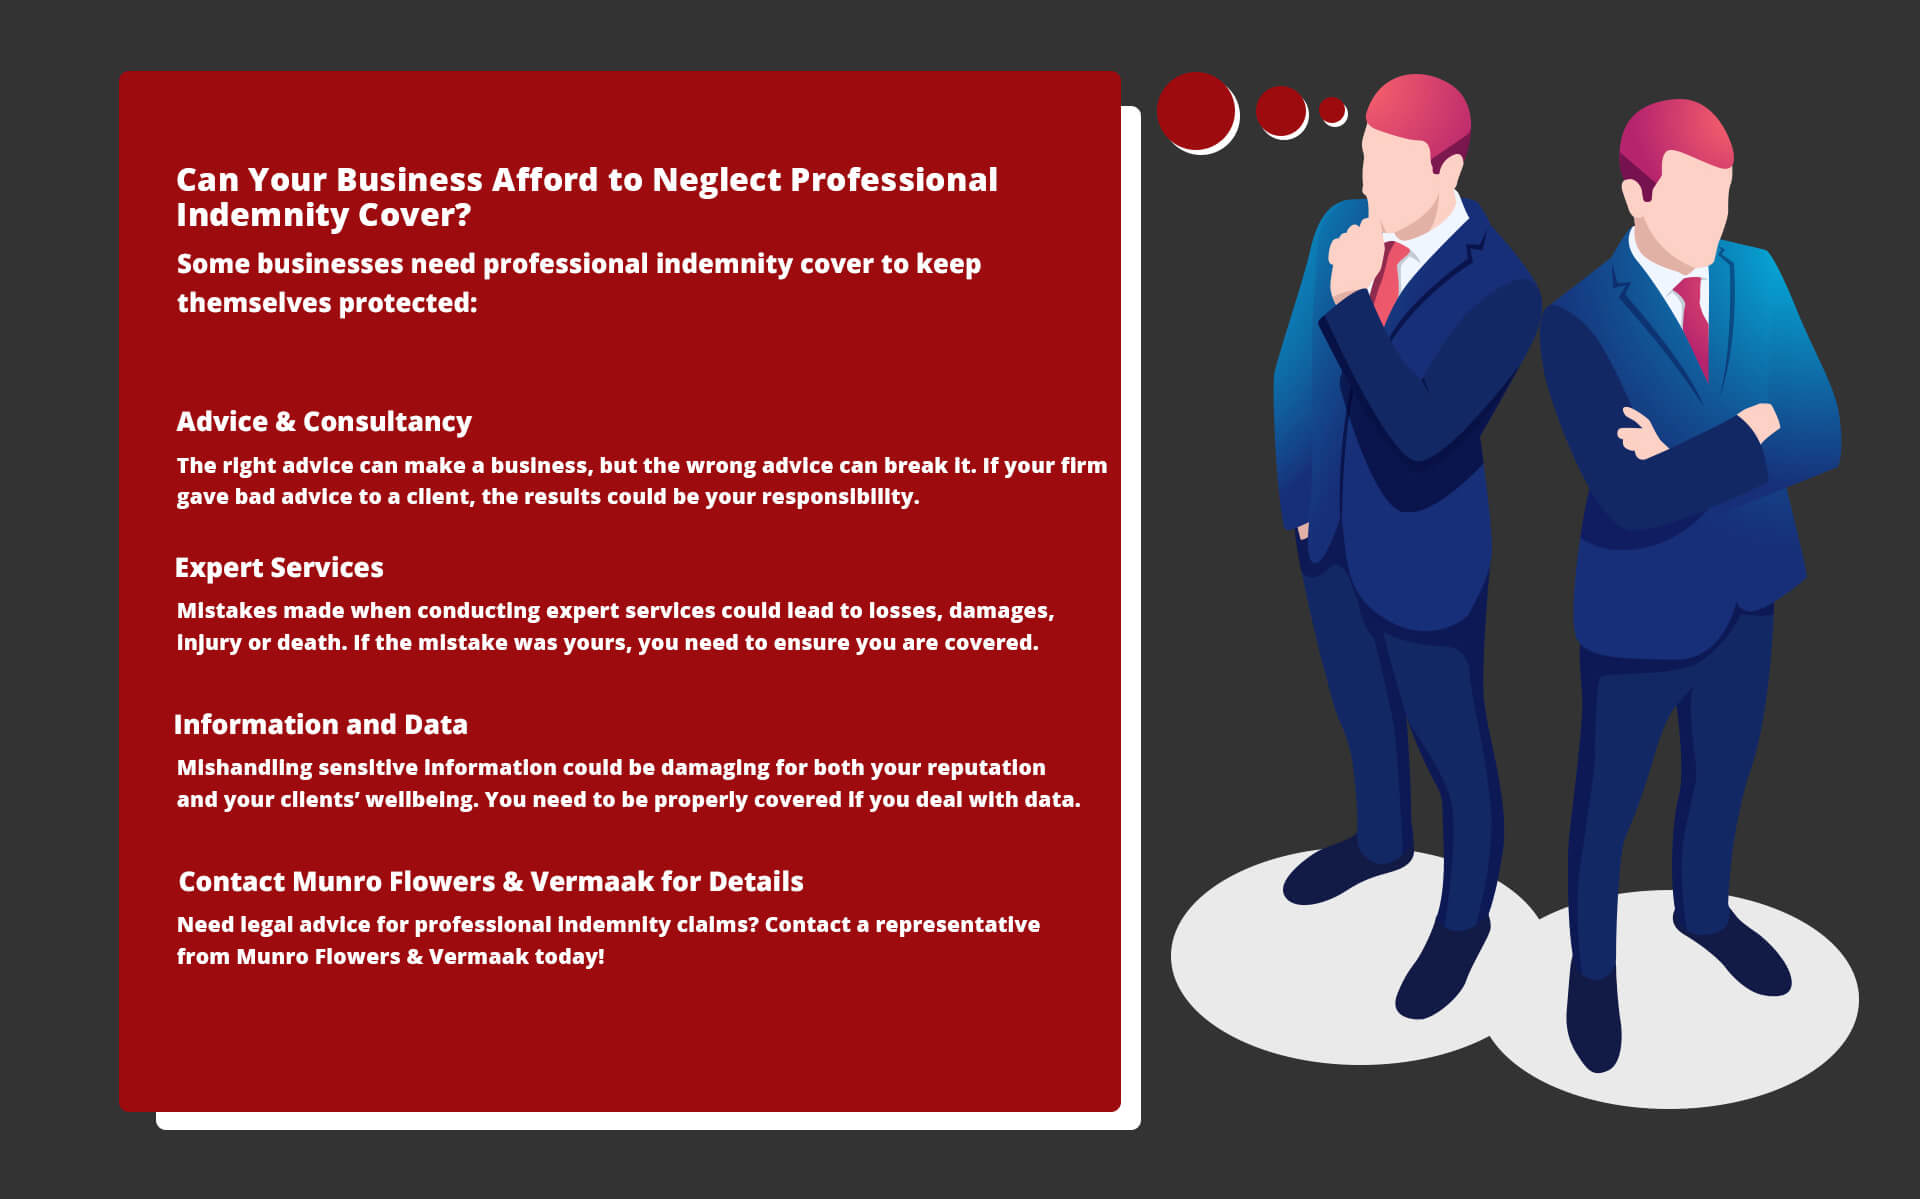 Types of Businesses that Need Professional Indemnity